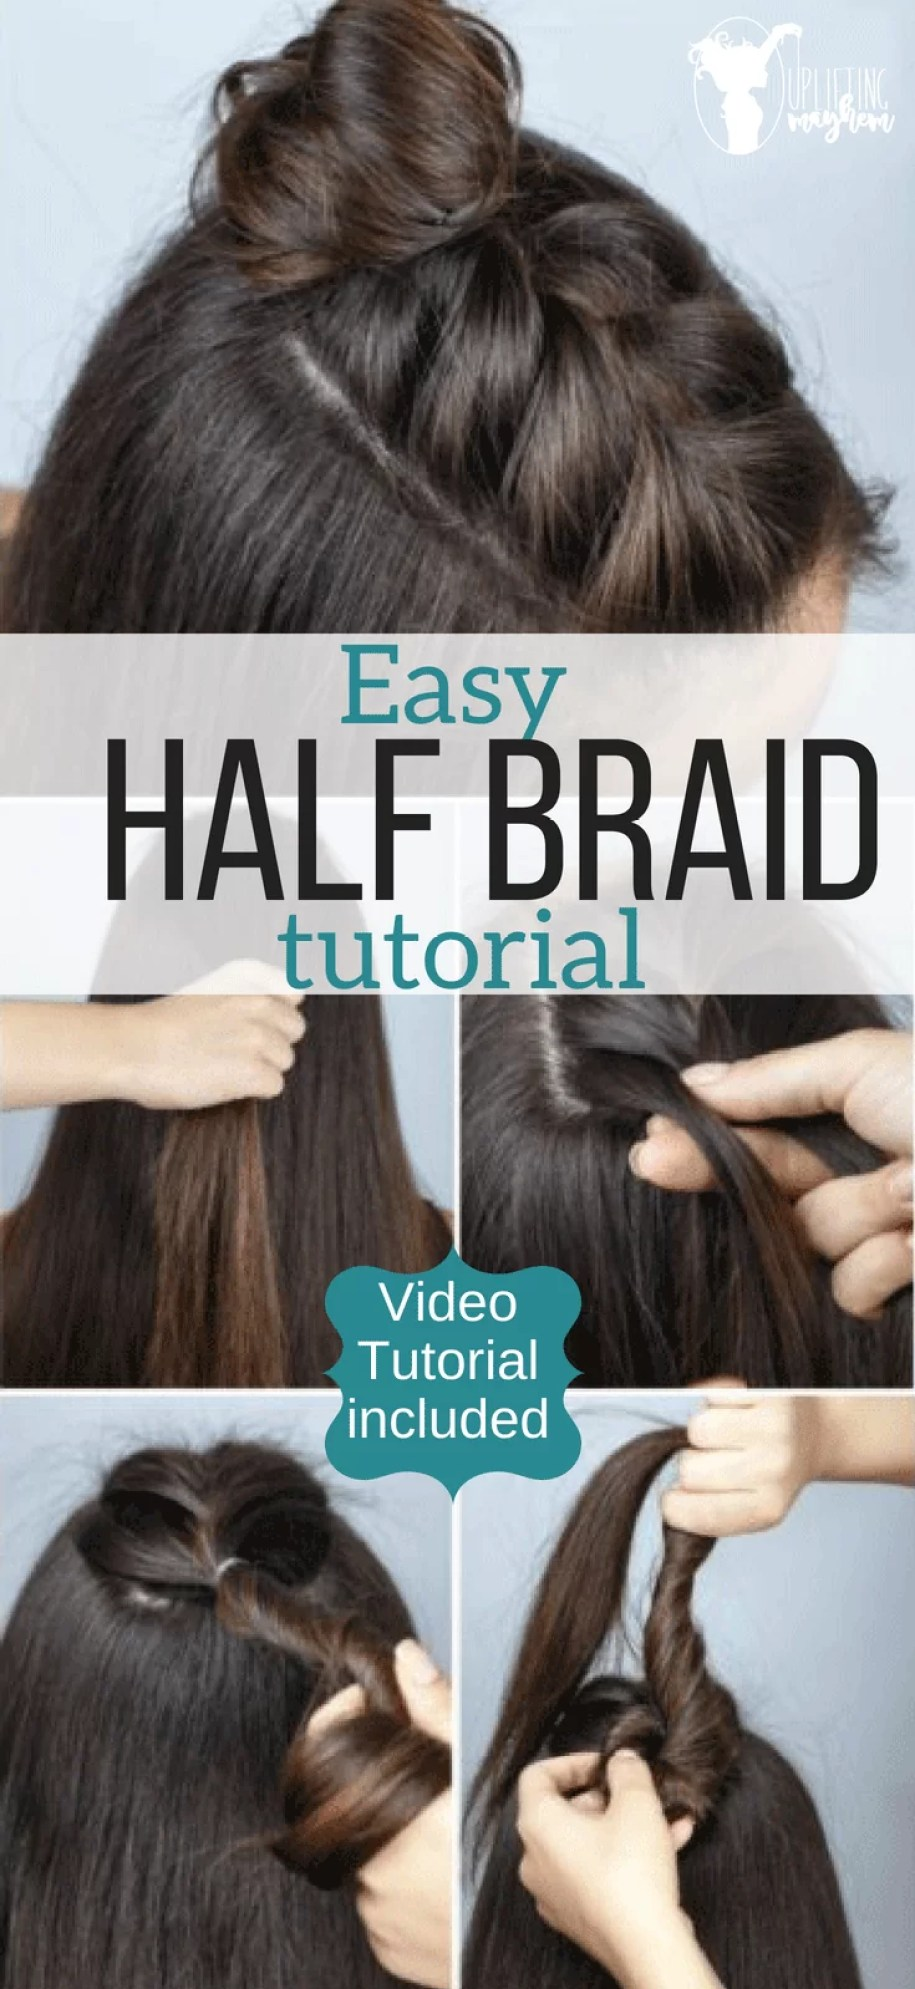 Adorable half braid tutorial. Freshen up you hairstyle with this easy updo that is super cute! Video tutorial included.